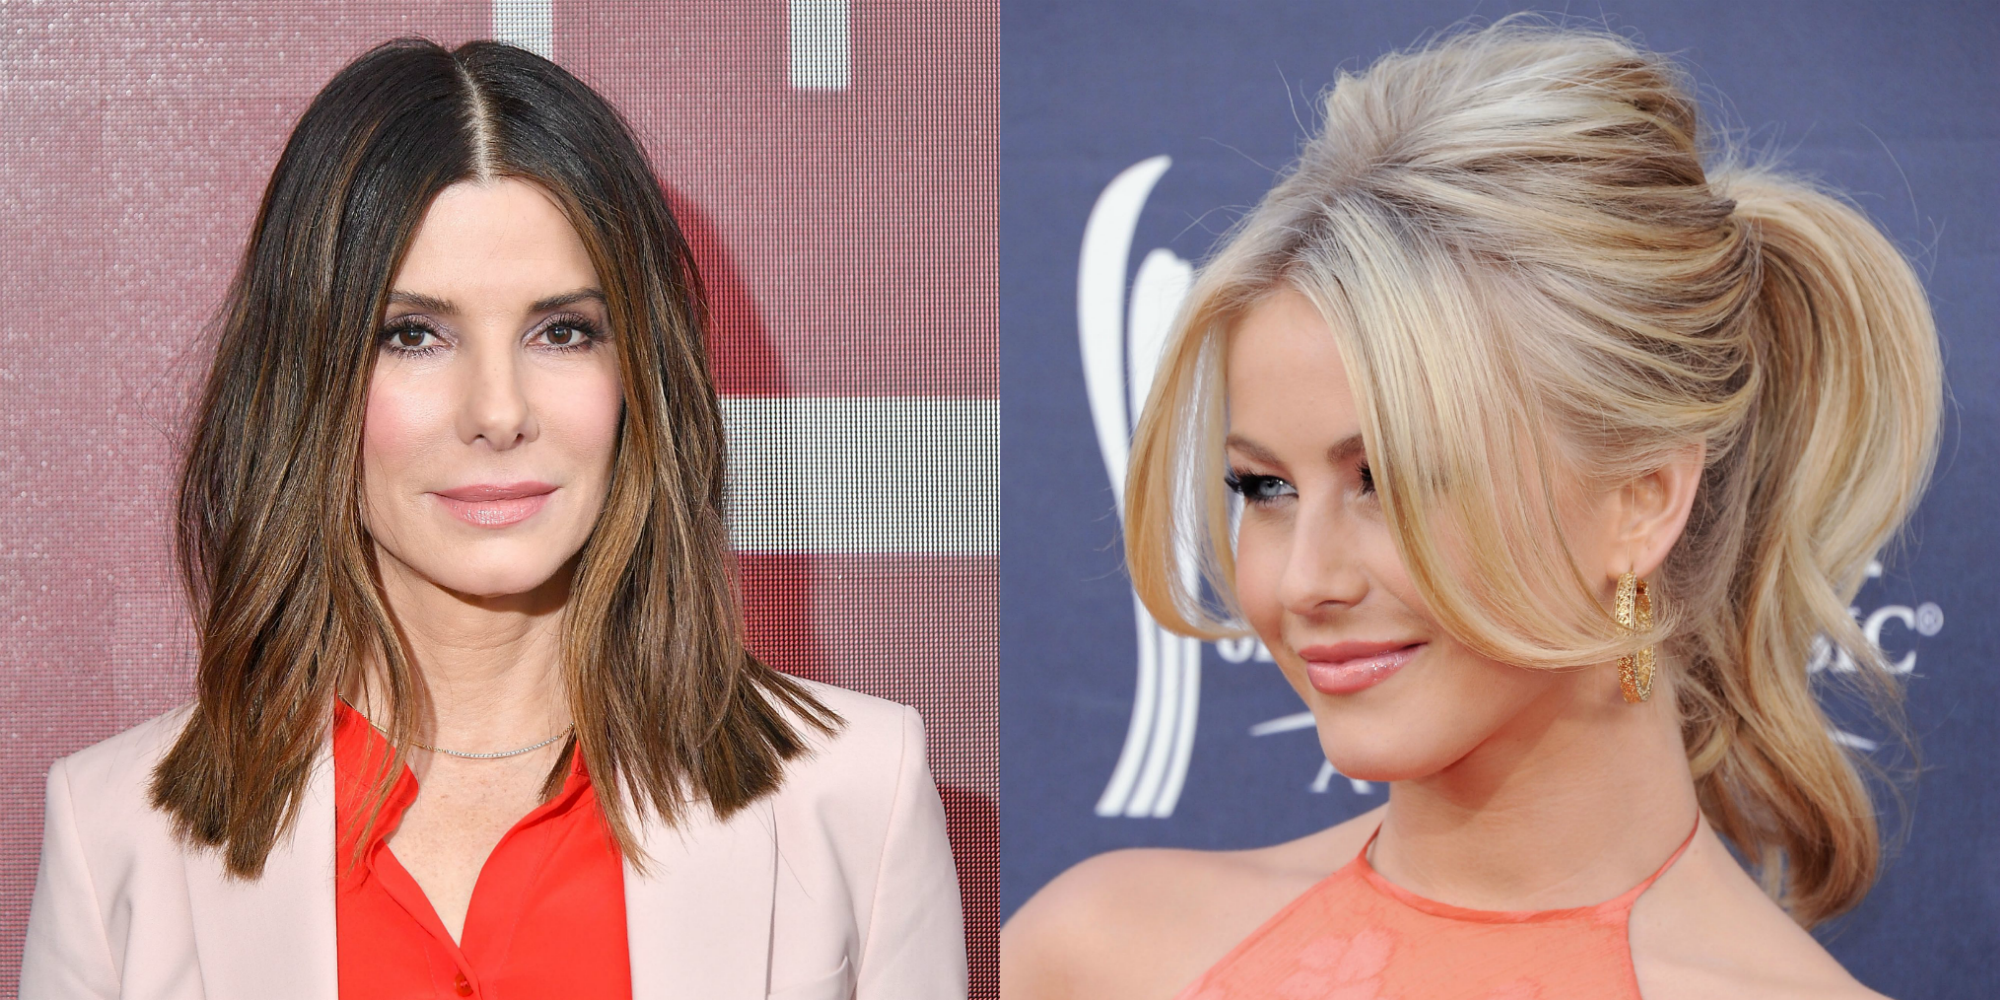 10 Best Hairstyles For Women With Thin Hair According To Experts